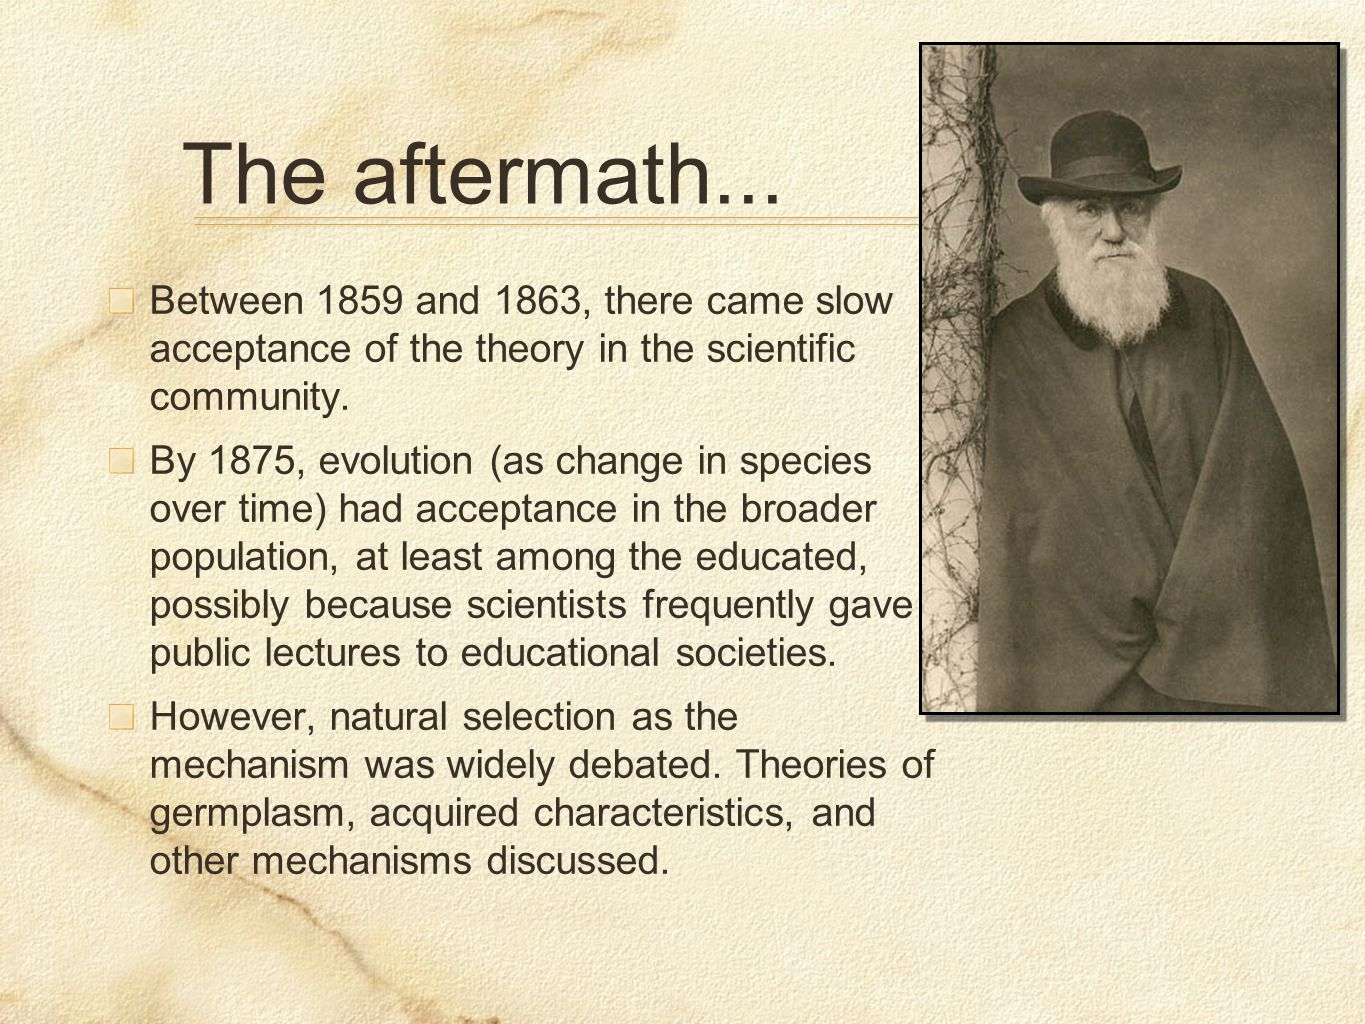 Between 1859 and 1863, there came slow acceptance of the theory in the scientific community.